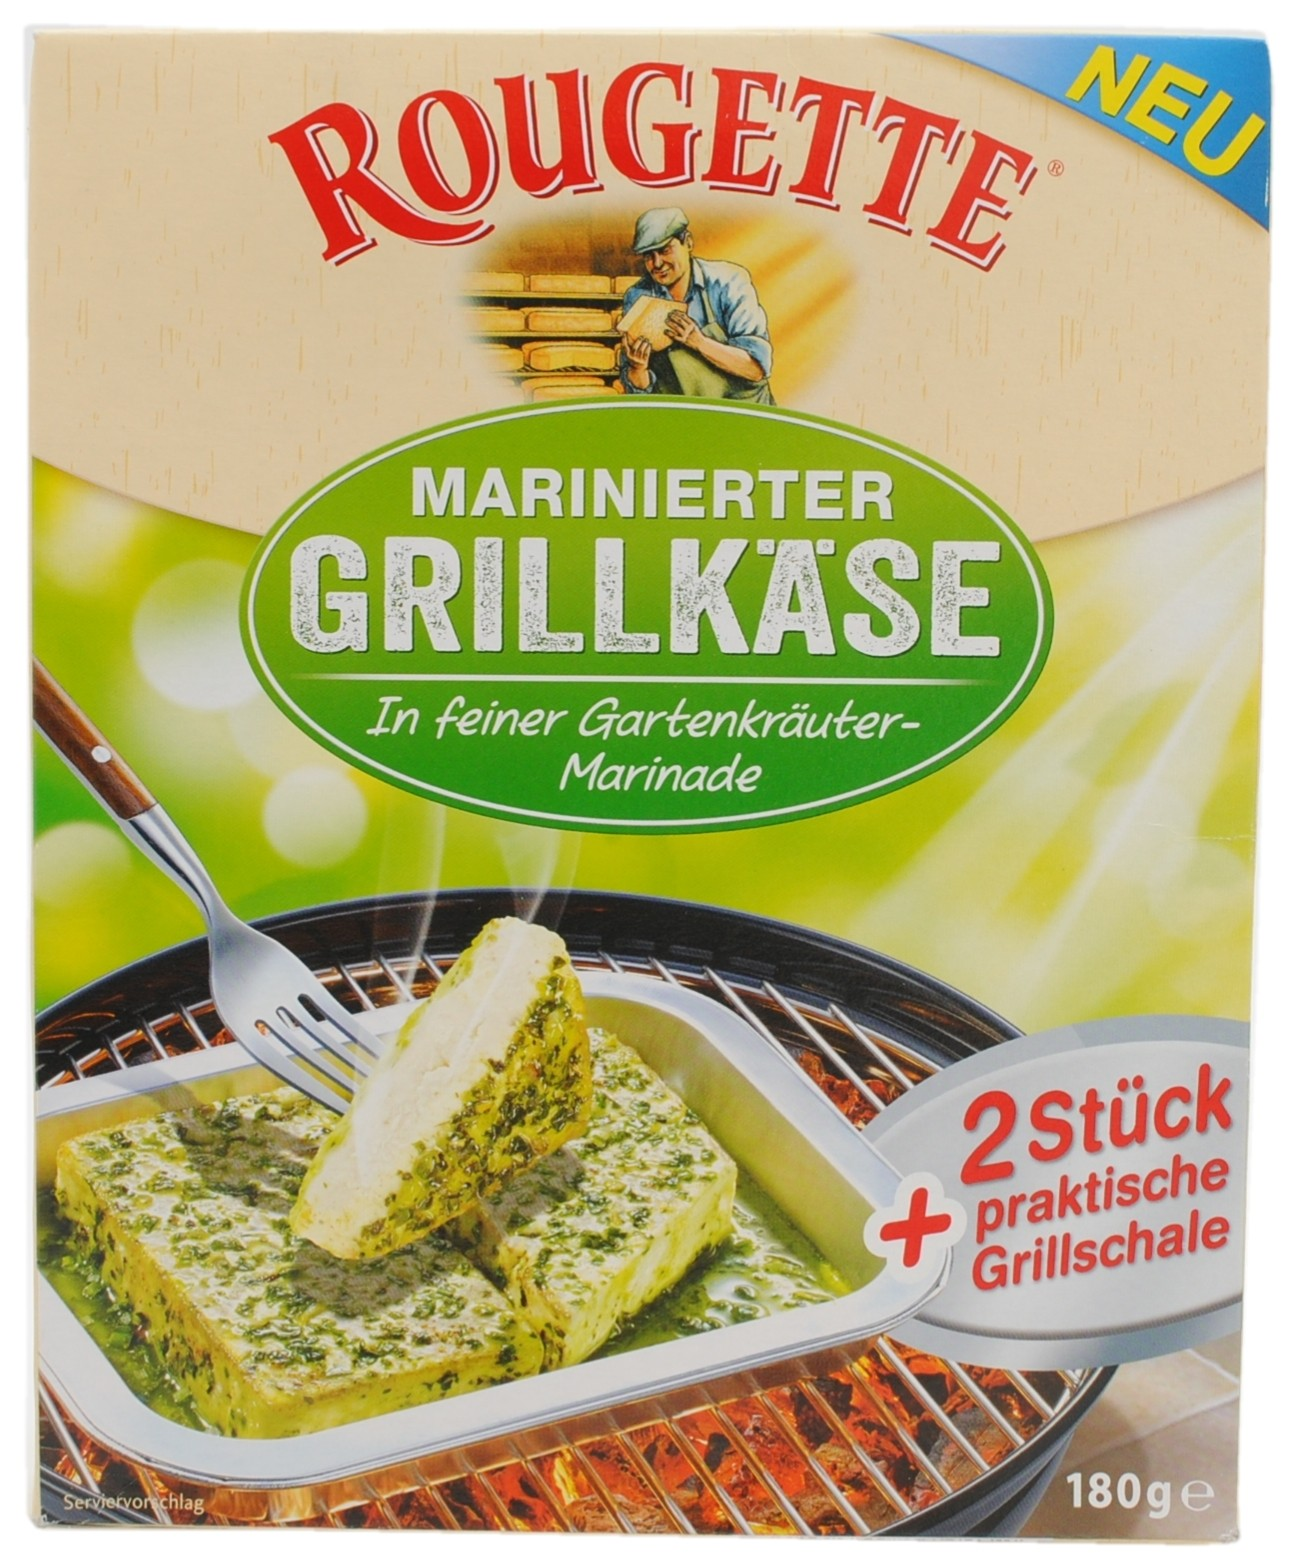 Marinated Grilling Cheese in Fine Garden Herb Marinade